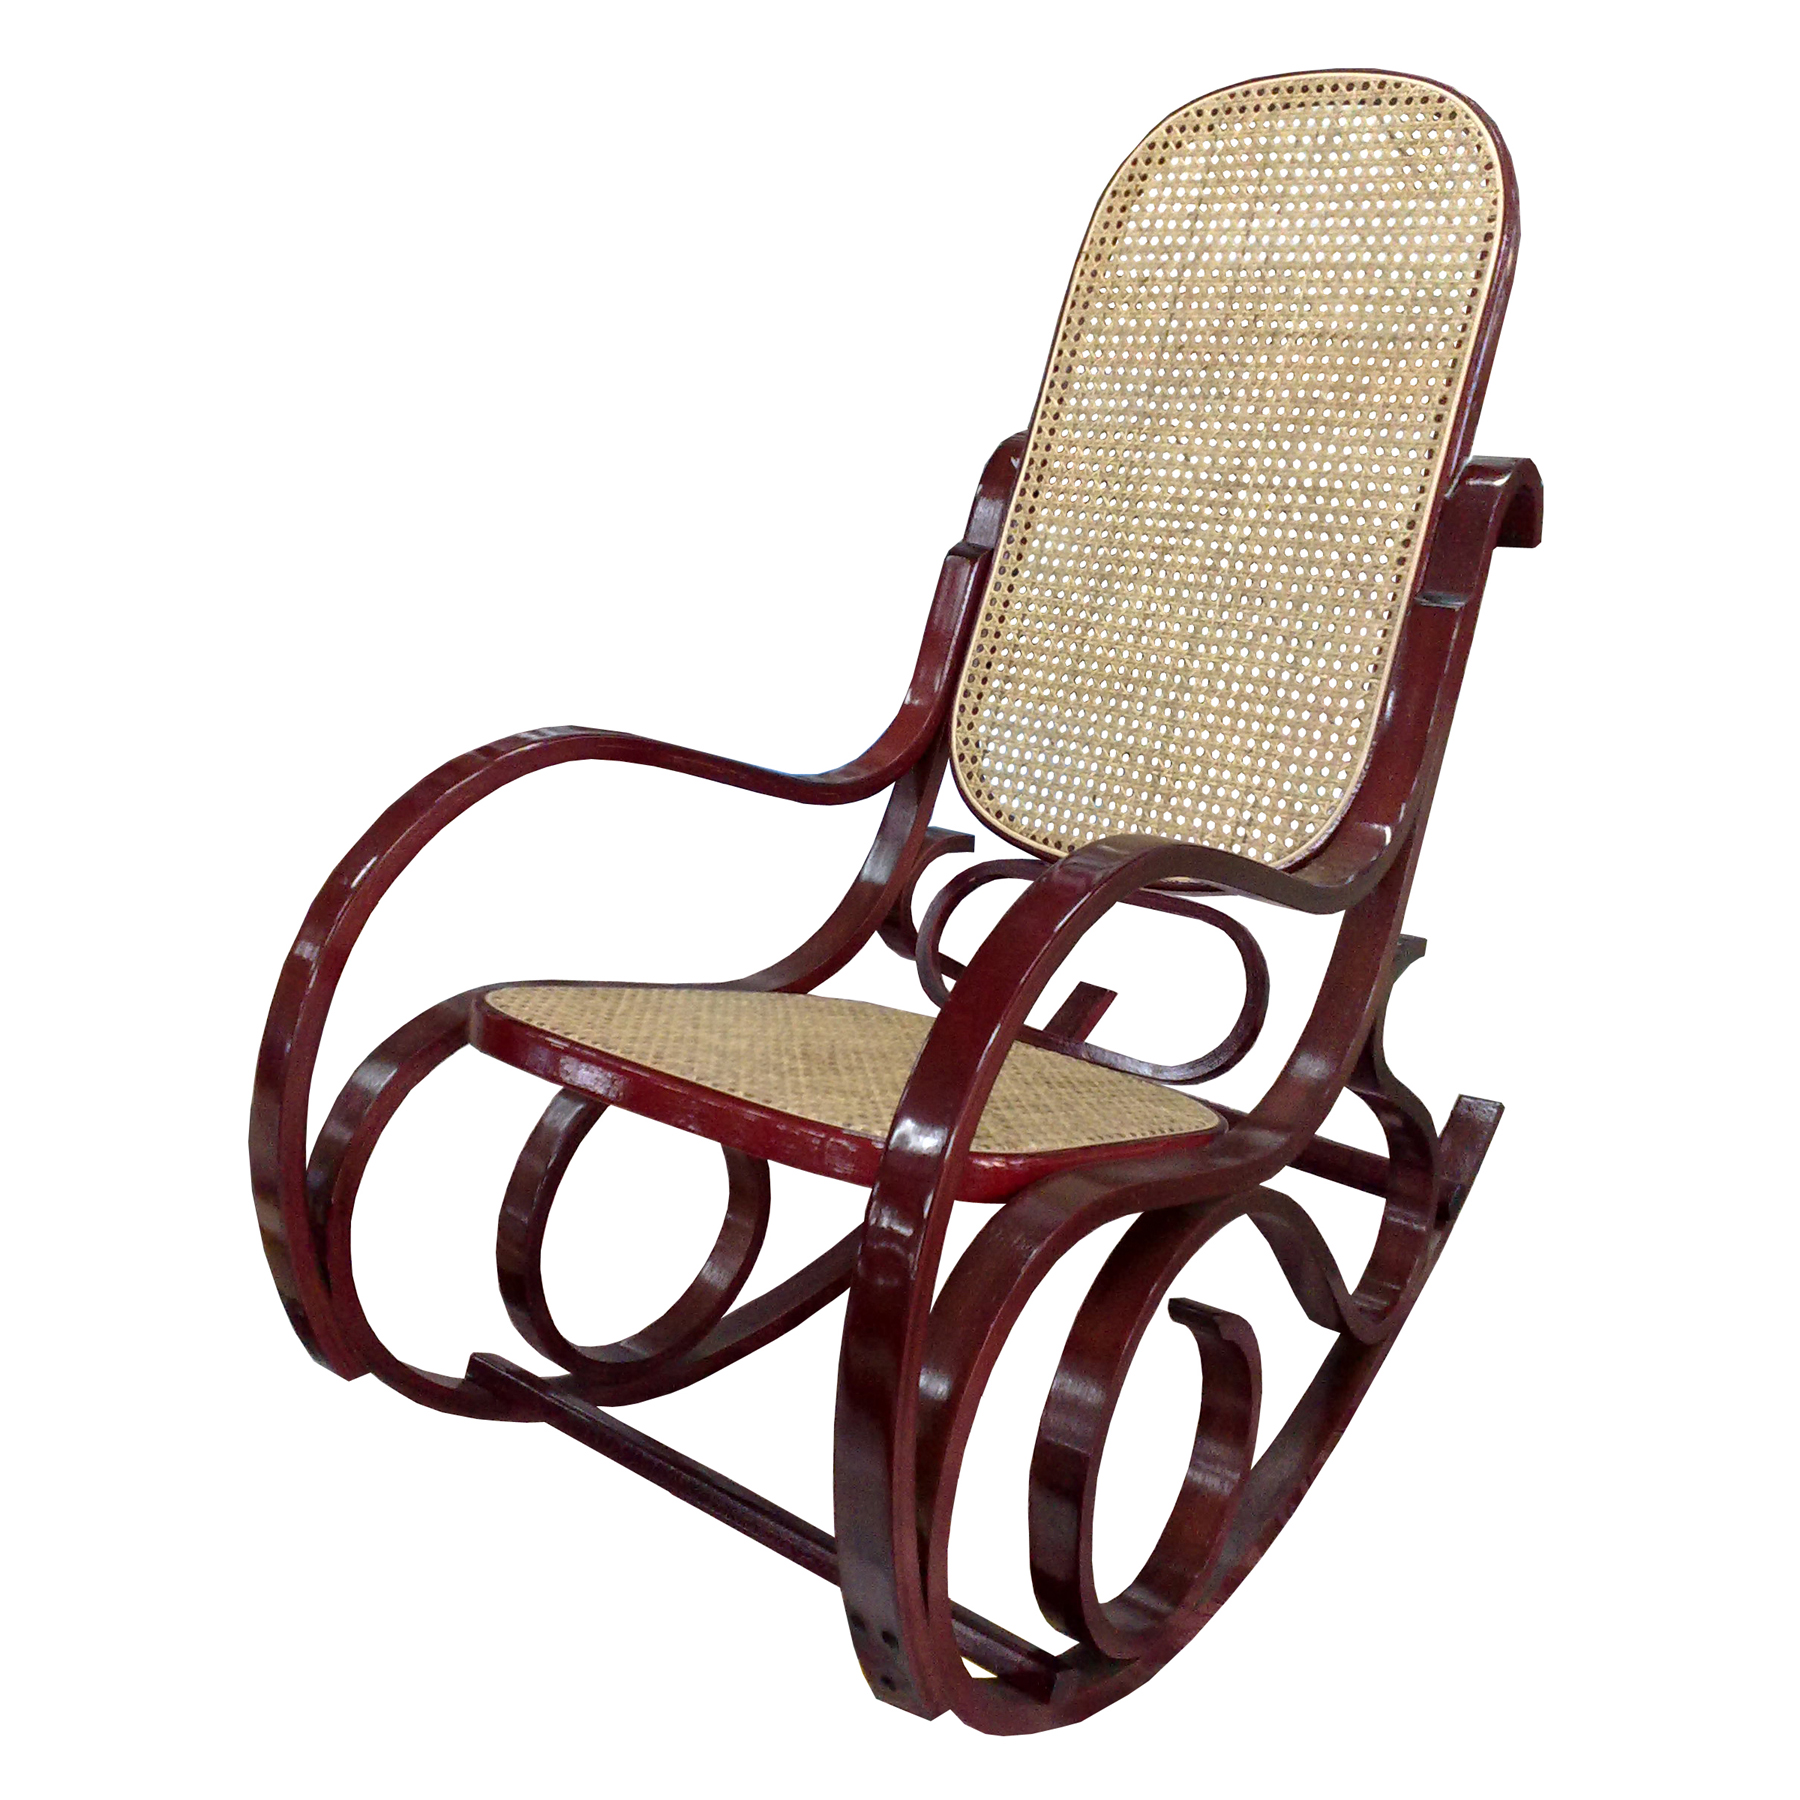 Wooden crib for sale makati - Wooden Rocking Chair